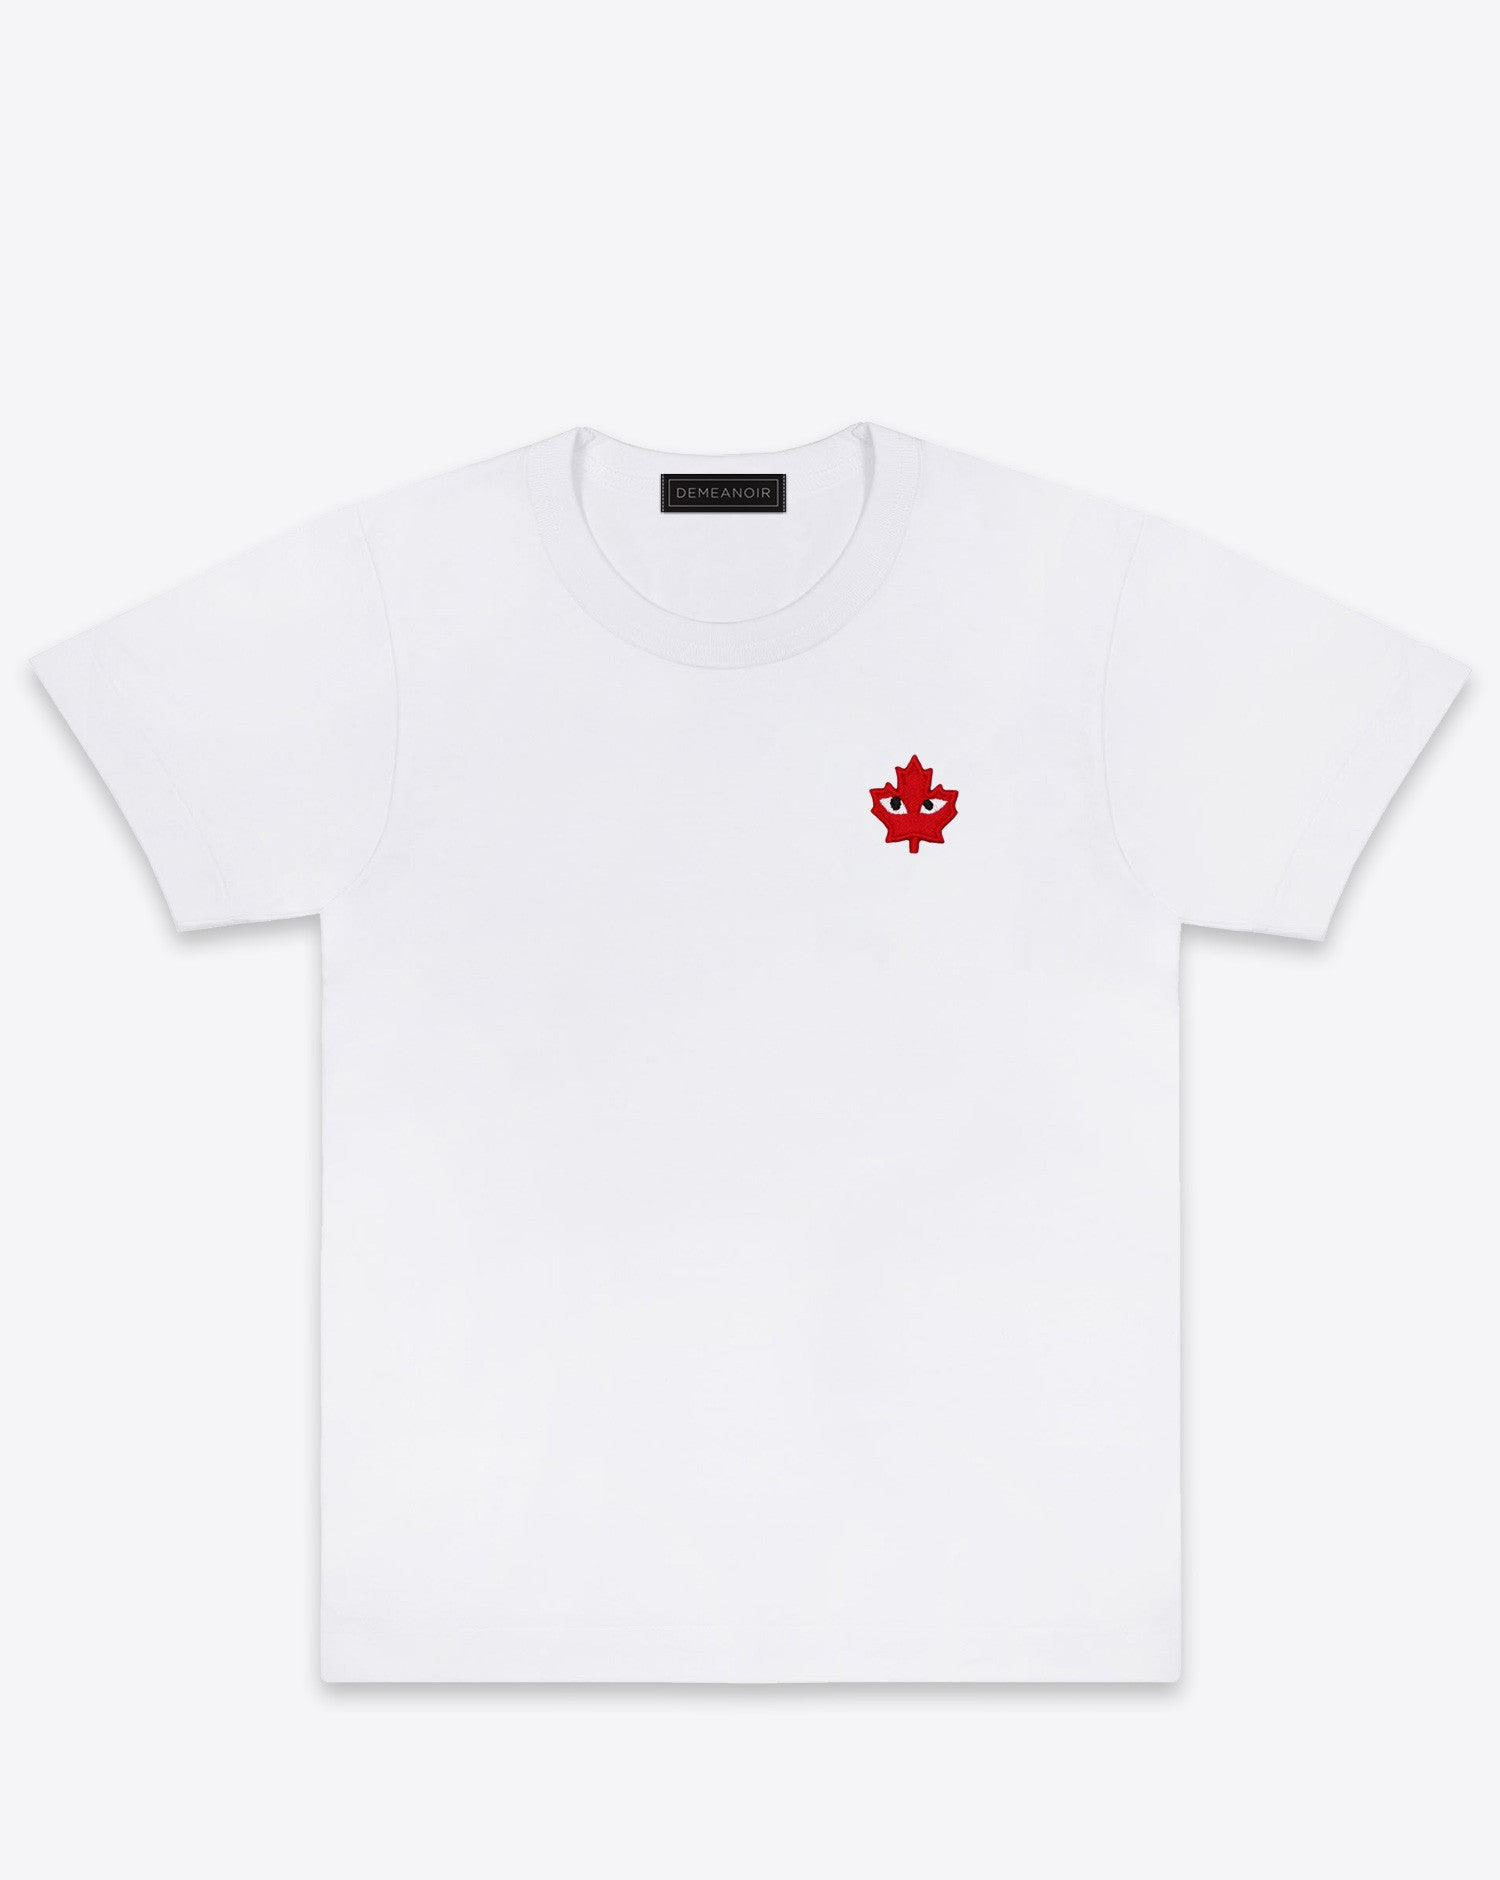 CDG T-SHIRT WHITE